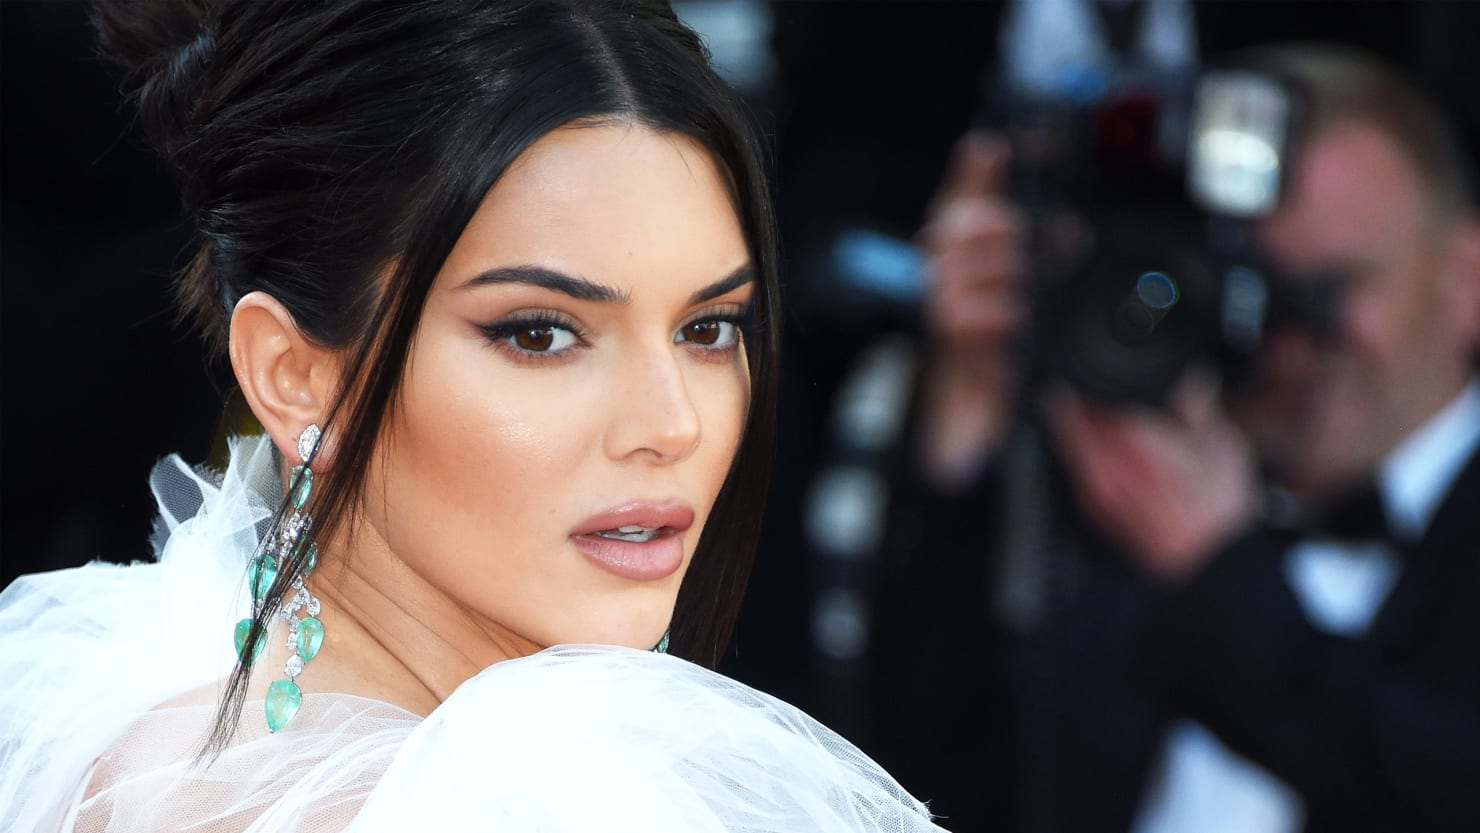 Kendall Jenner Doesn't Know How Hard a Model's Life Really Is